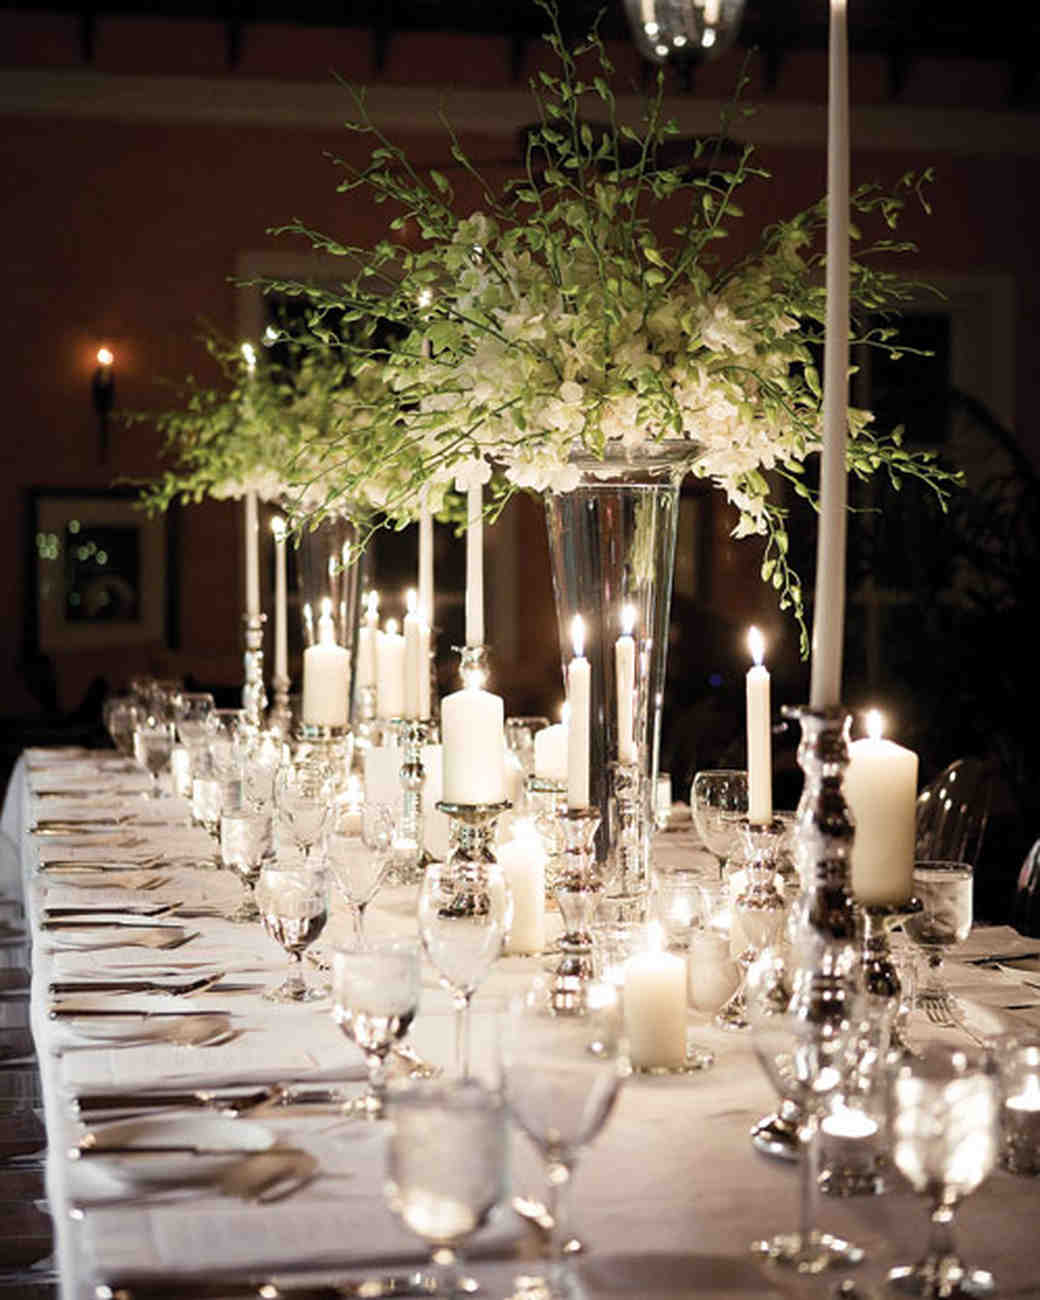 Marvelous White Centerpiece